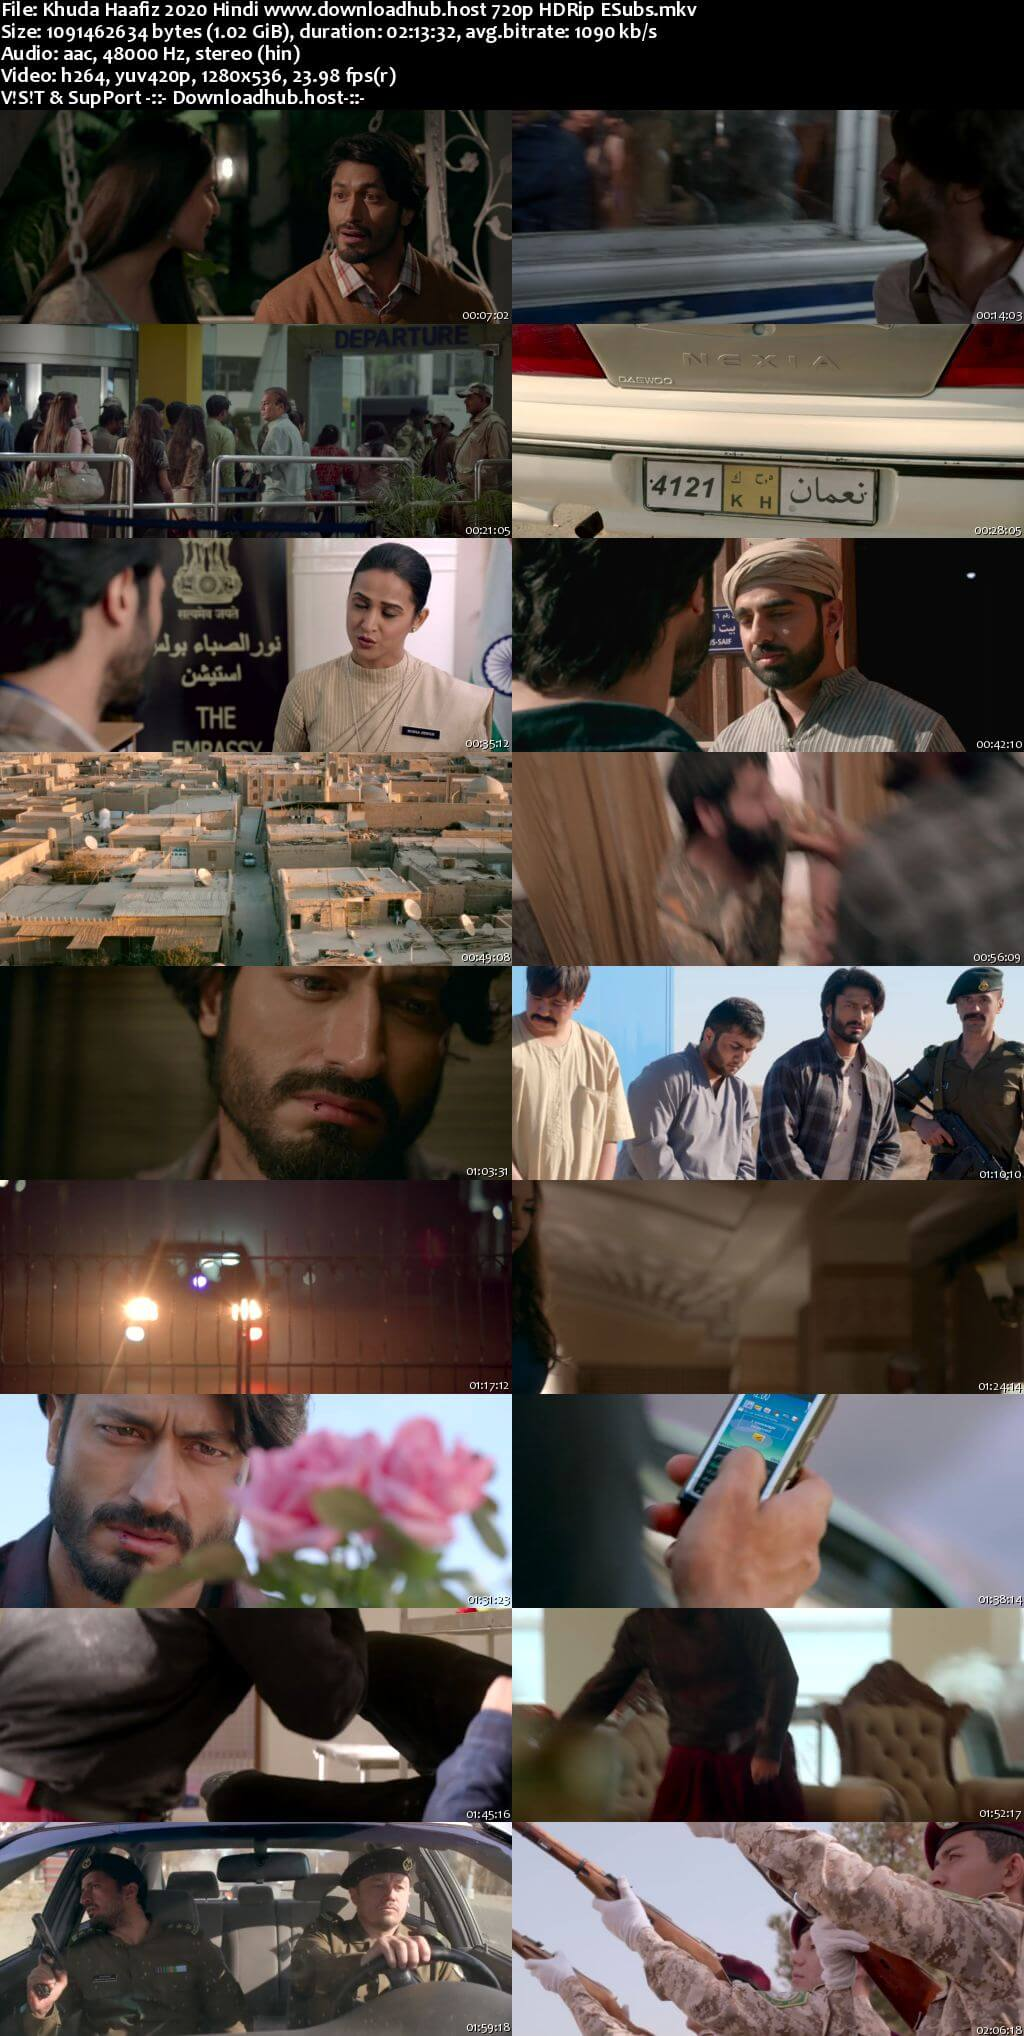 Khuda Haafiz 2020 Hindi 720p HDRip ESubs